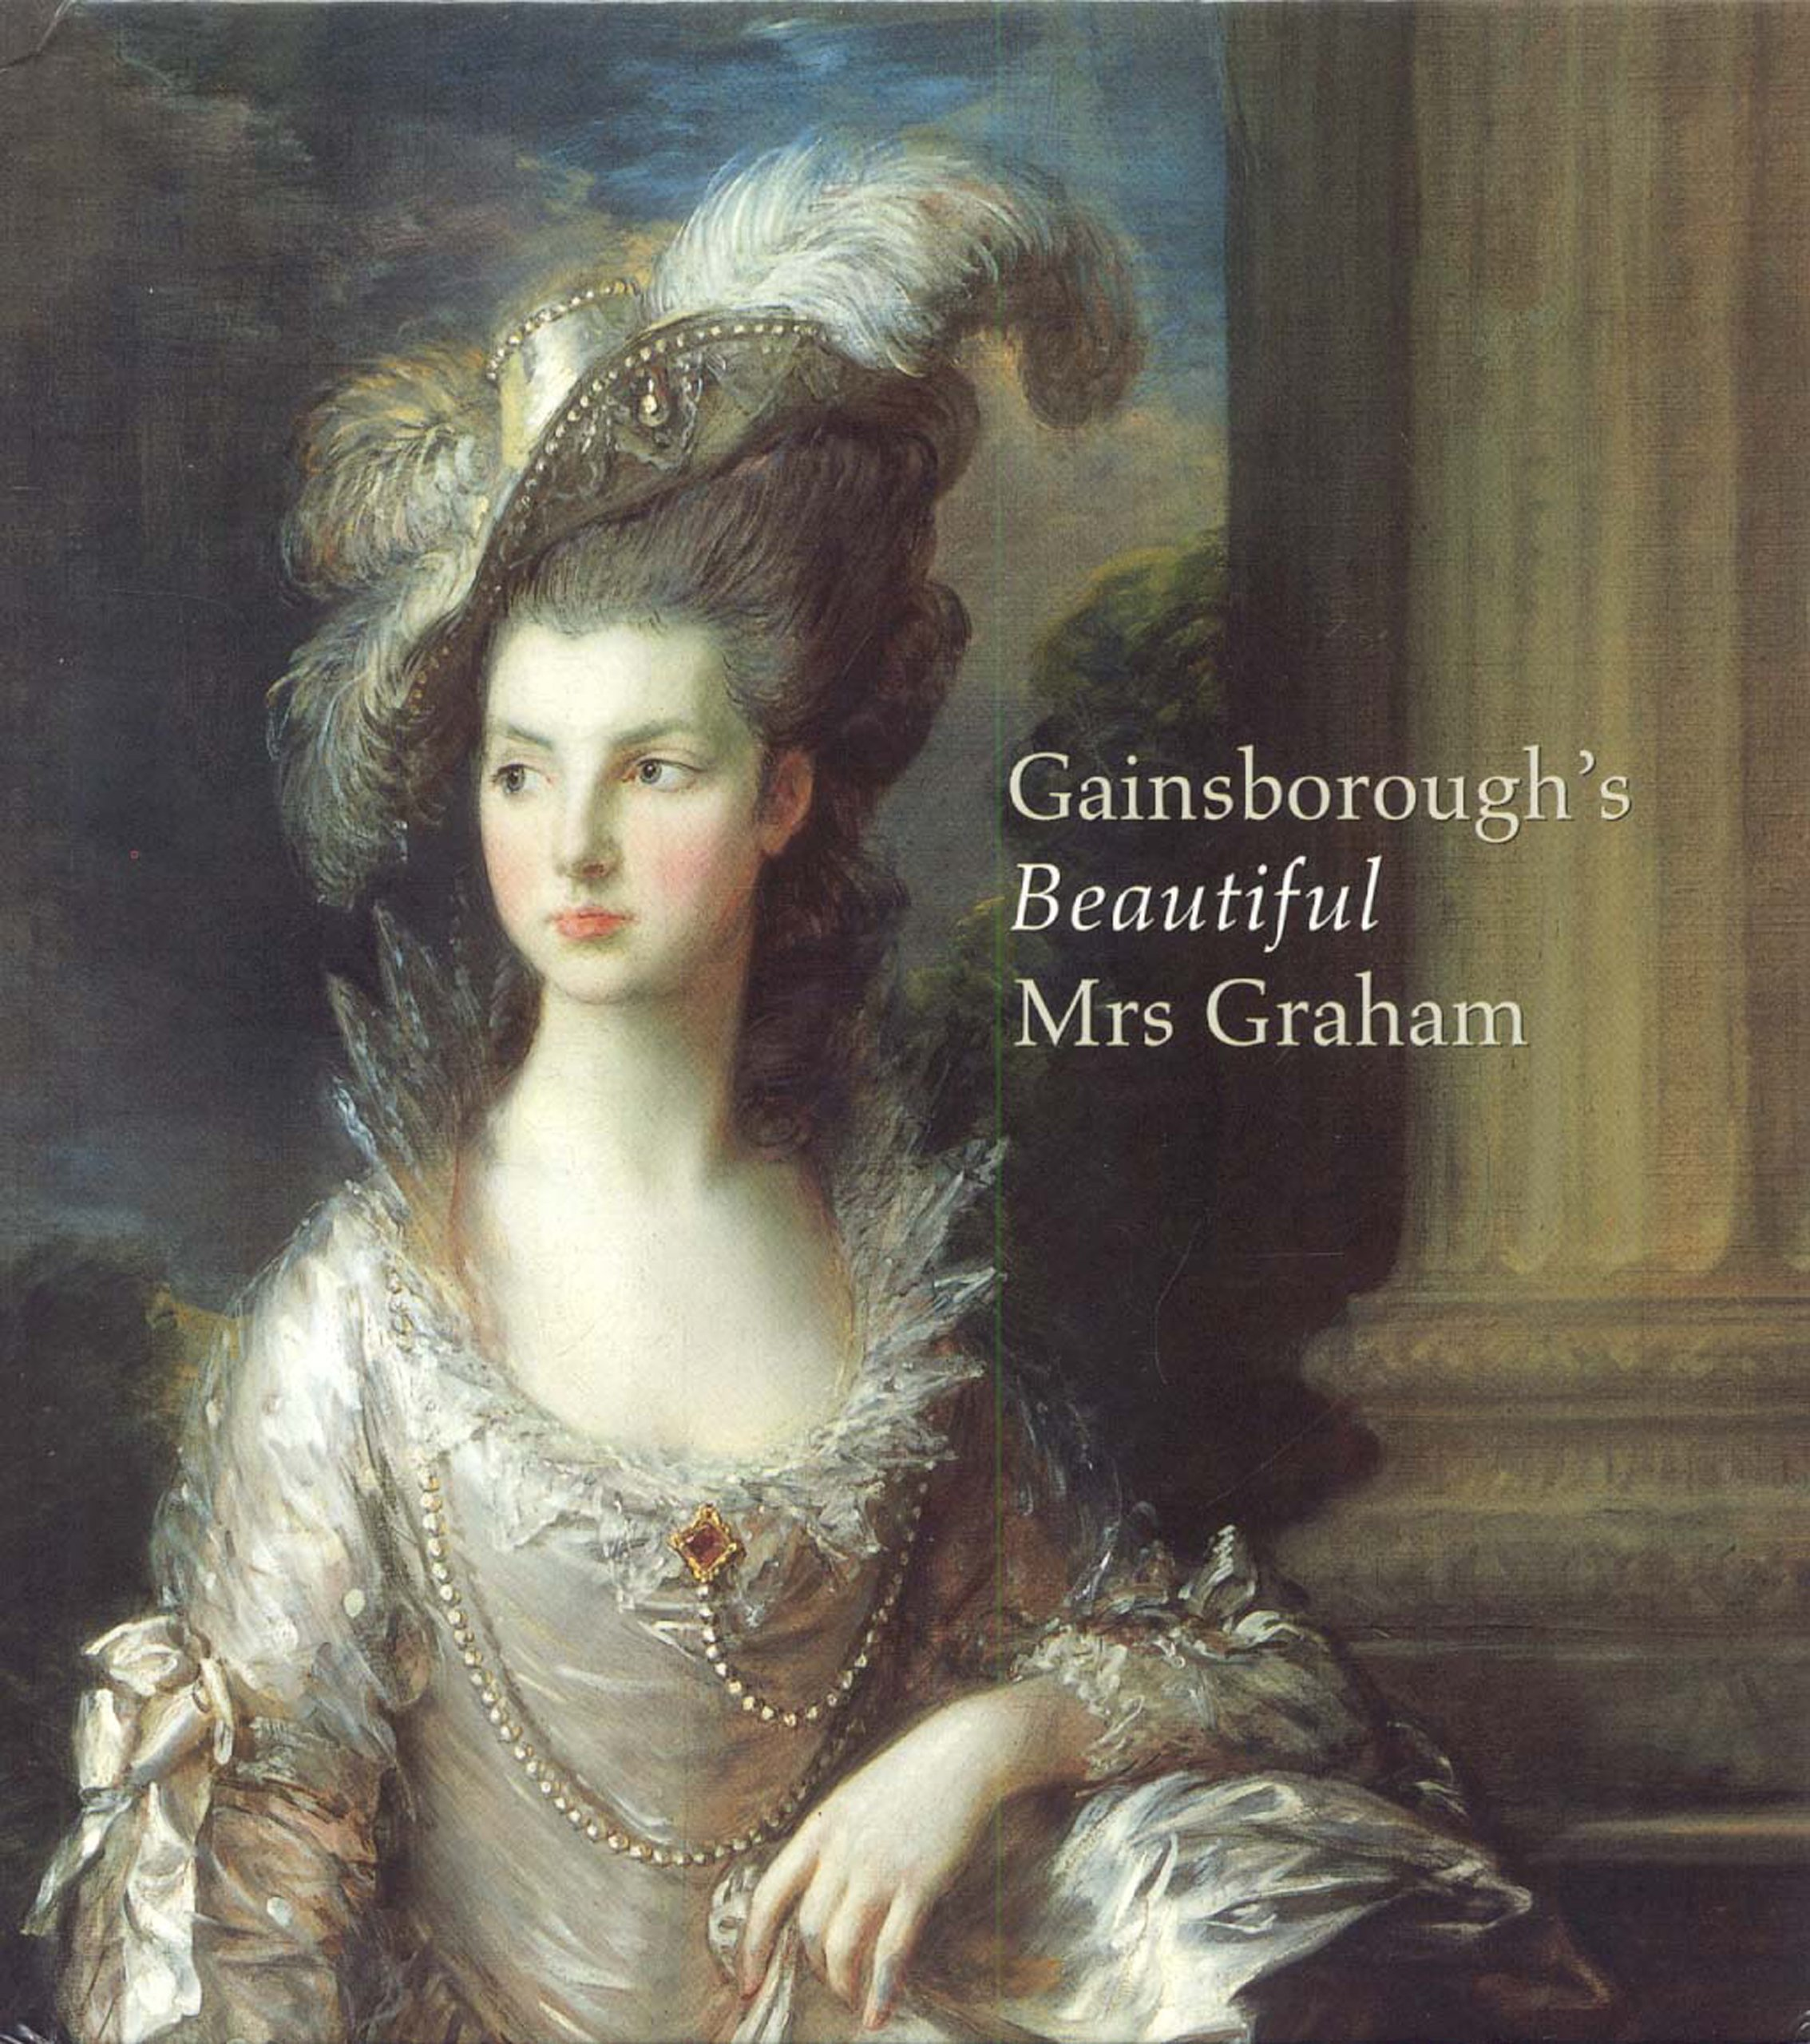 Gainsborough's Beautiful Mrs. Graham